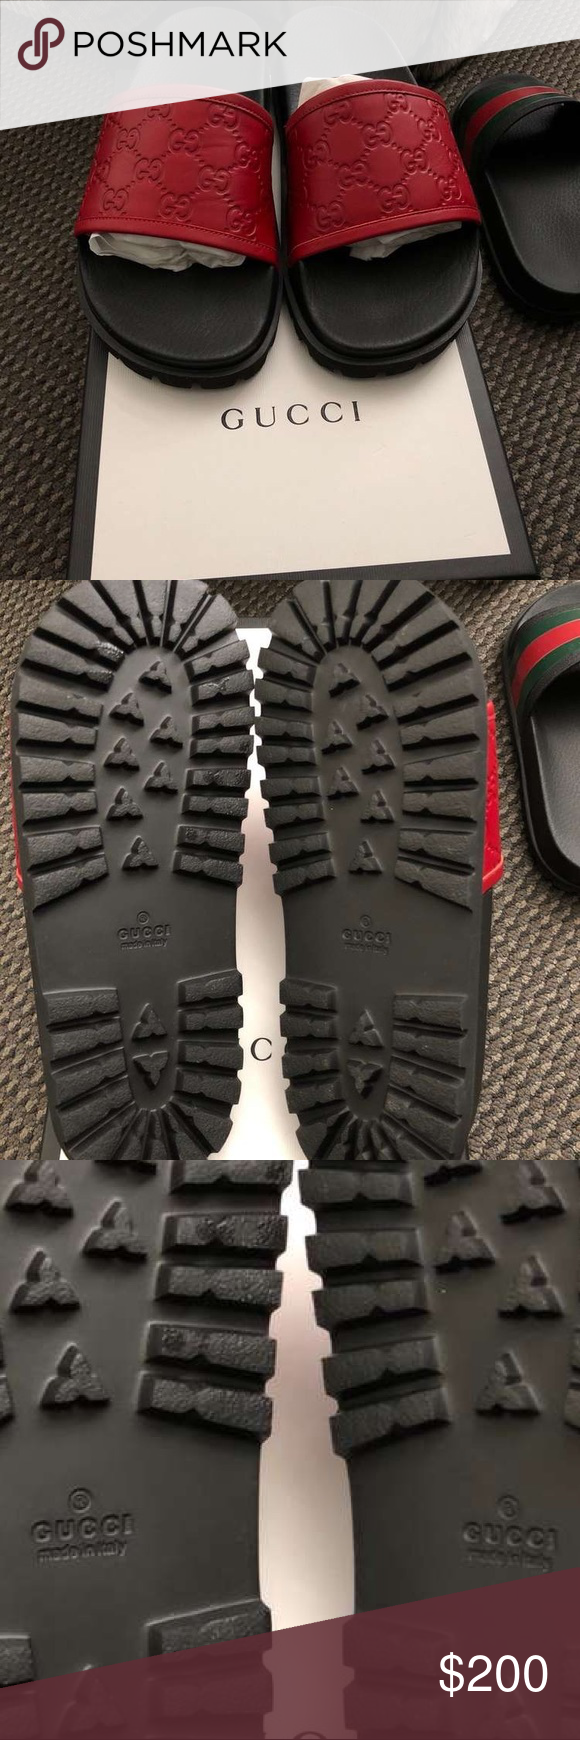 Authentic red leather Gucci slides Red